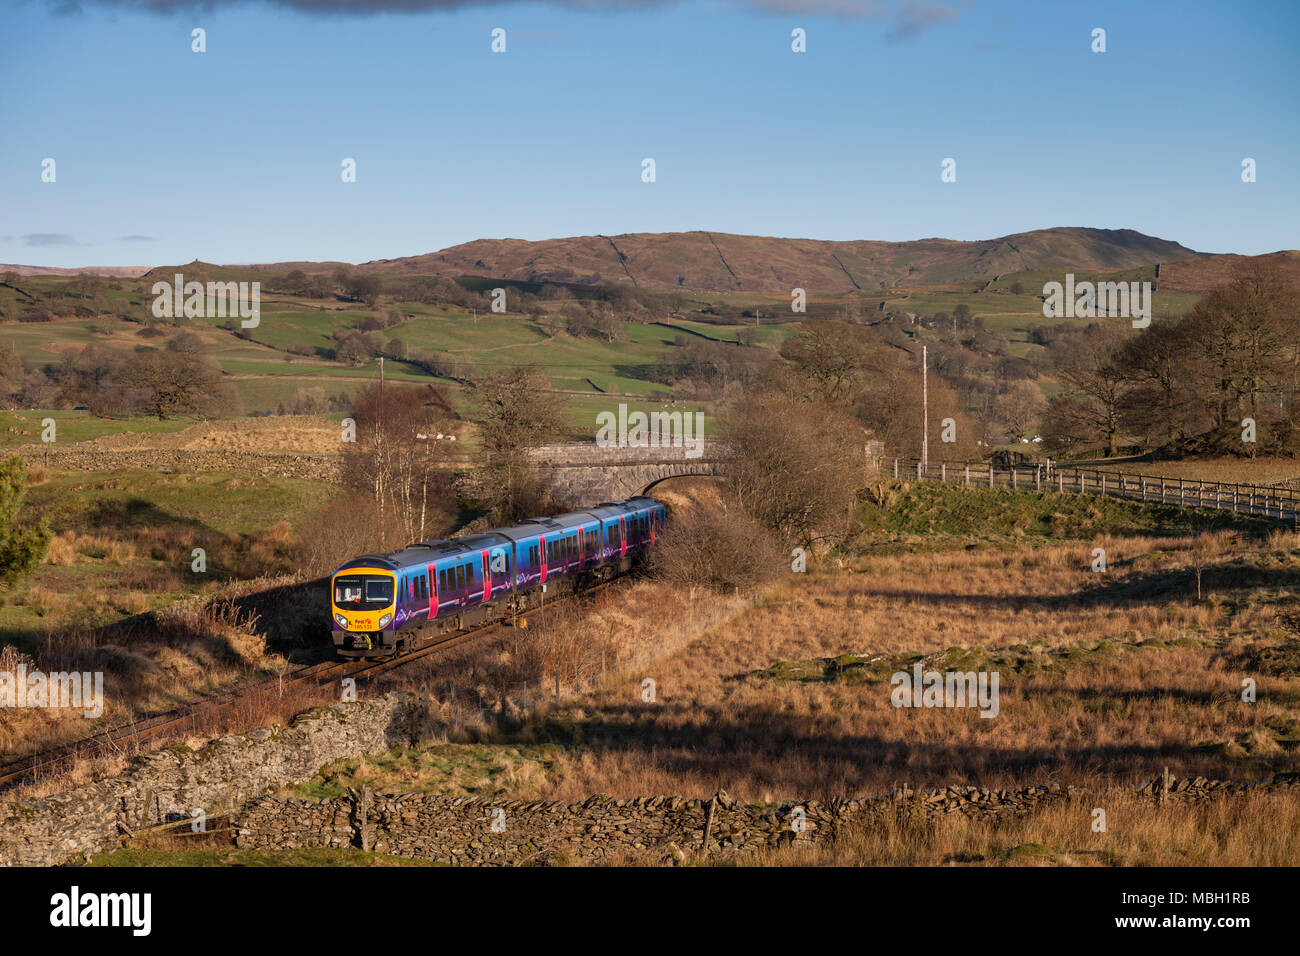 A First Transpennine Express class 185 train at Ings on the Oxenholme to Windermere railway line. - Stock Image